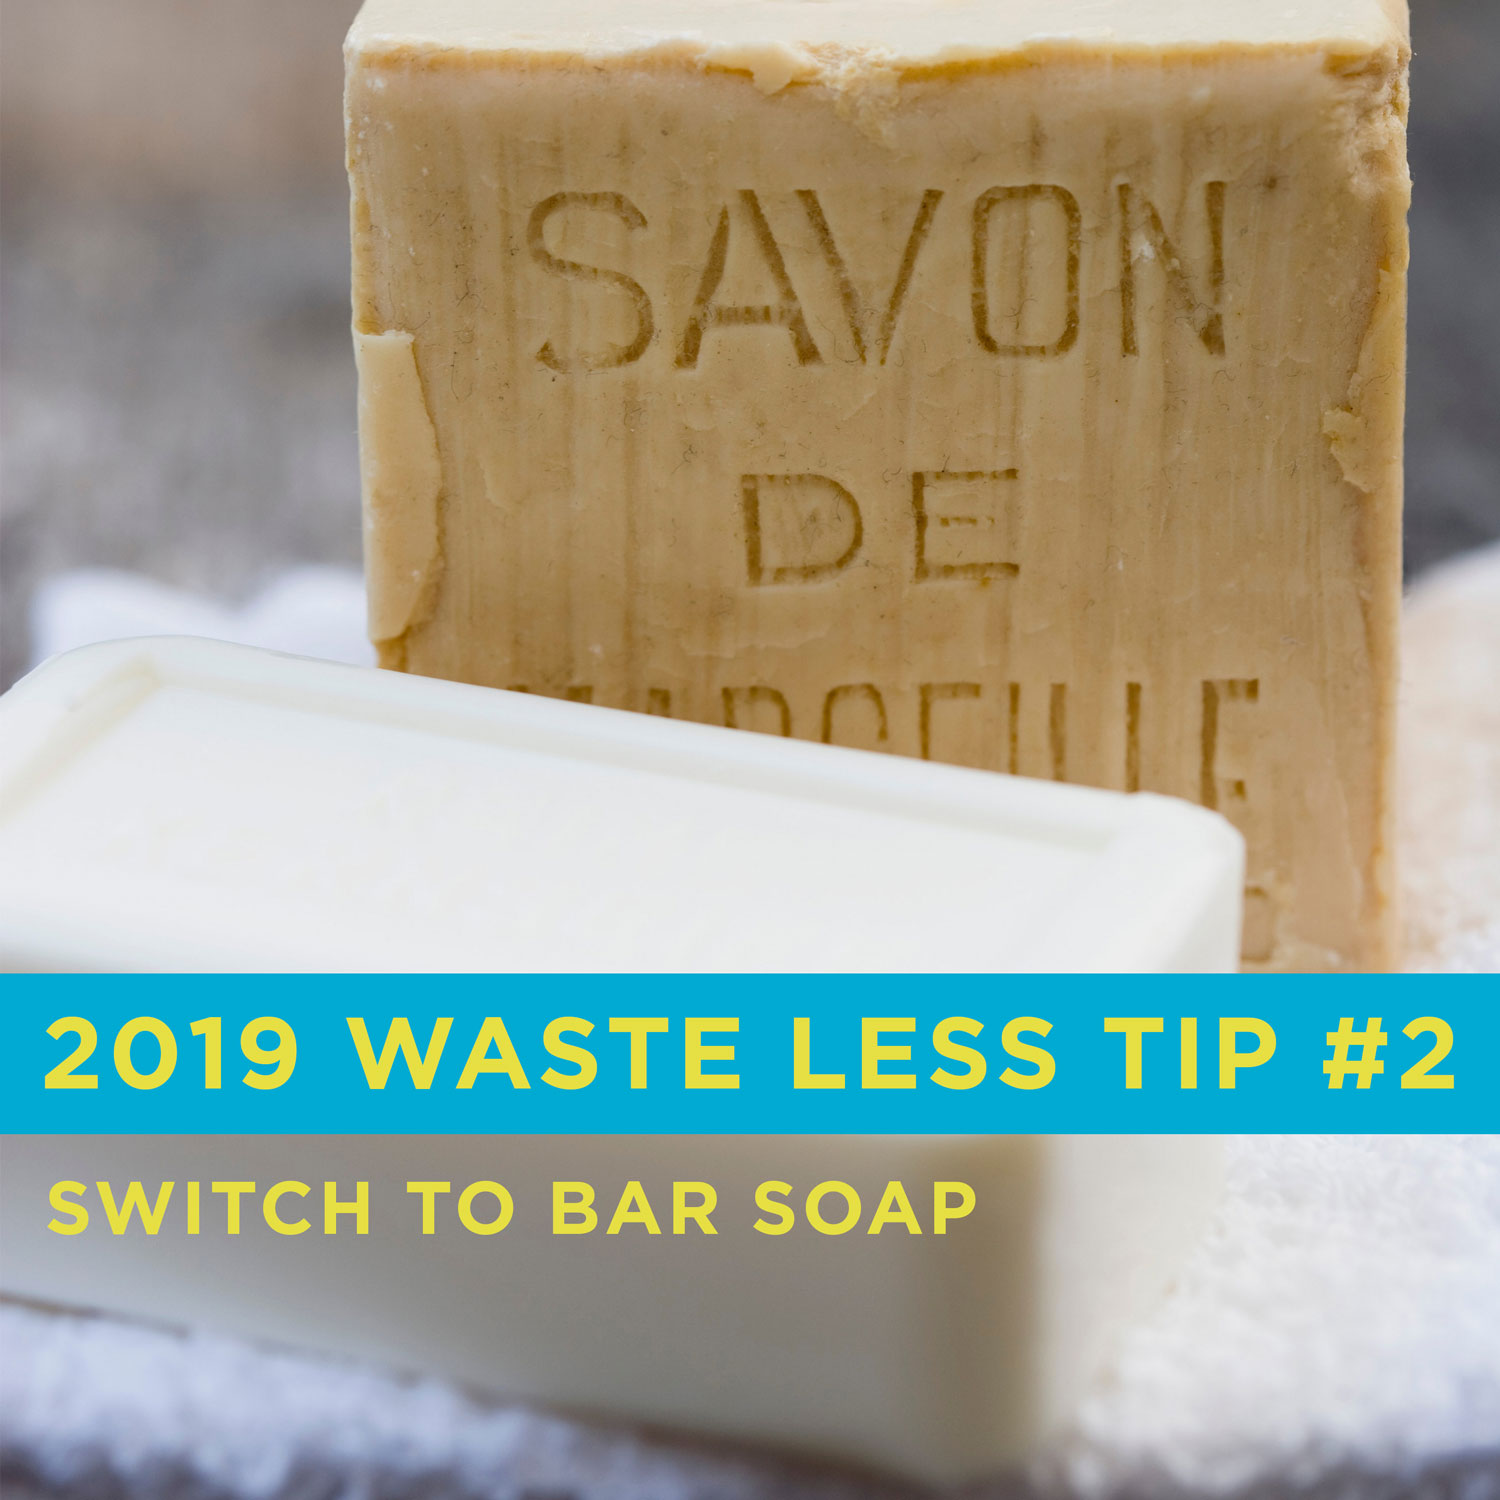 Environmentally friendly tip #2: switch to bar soap